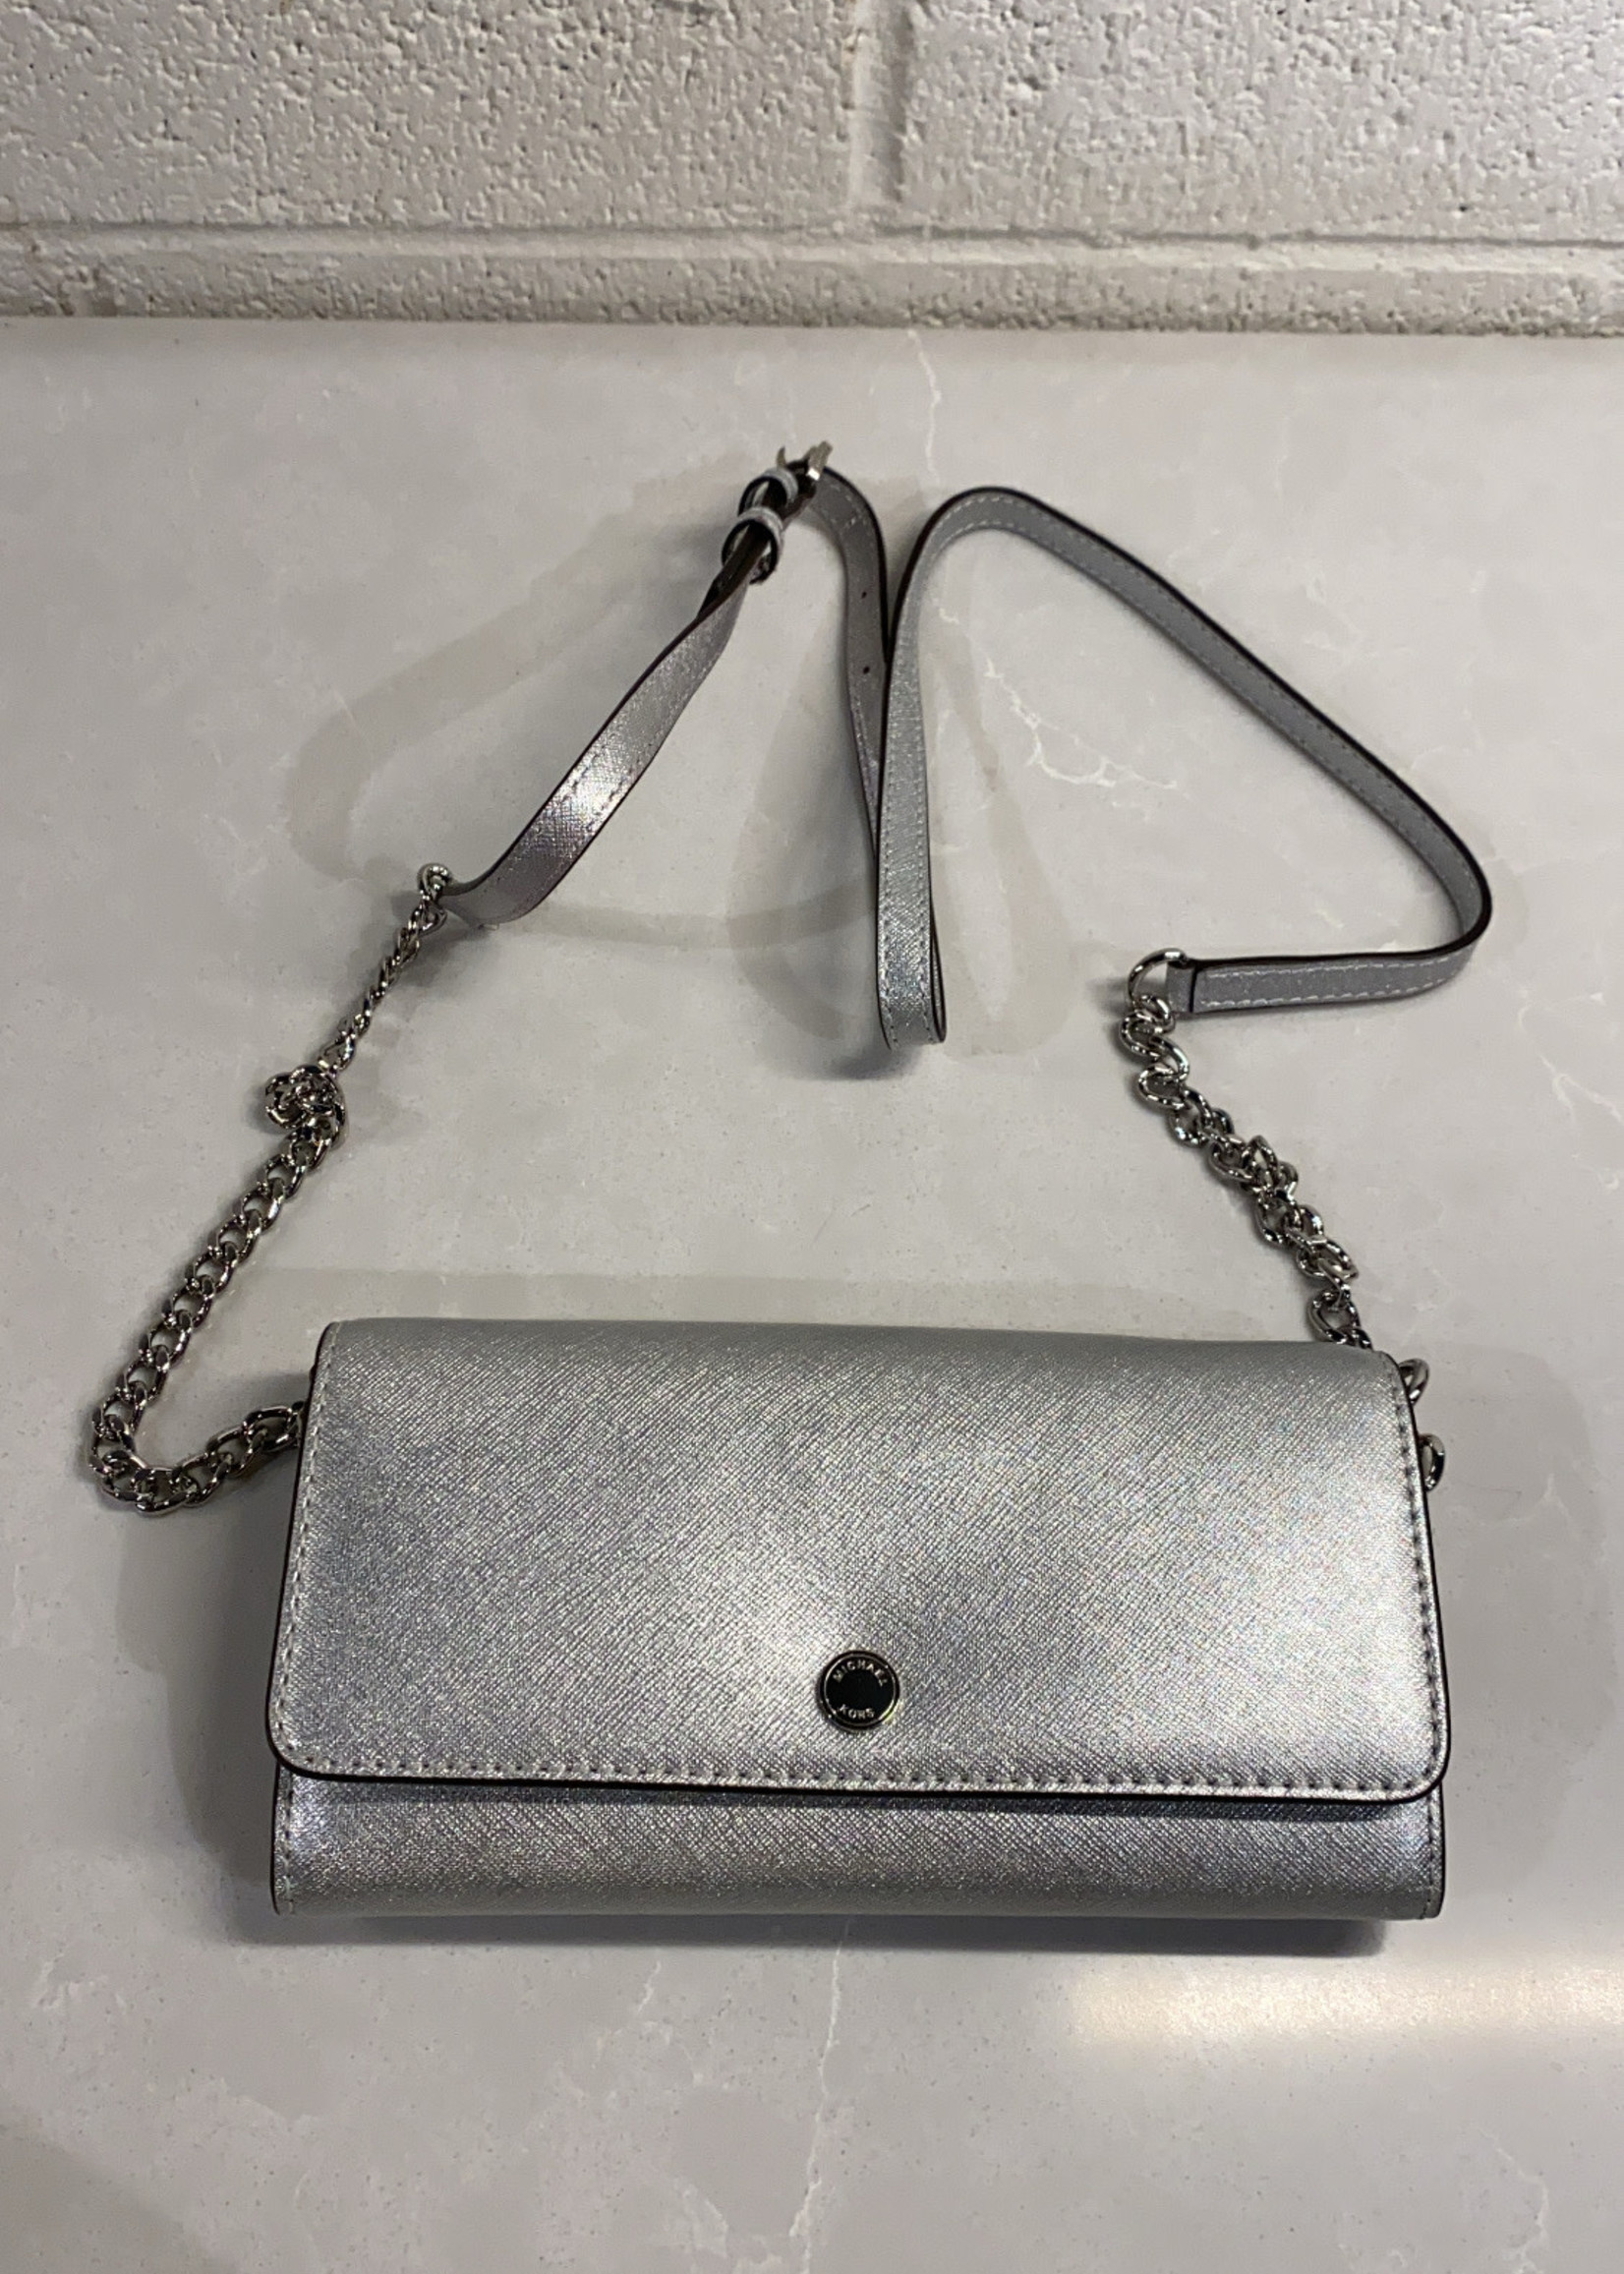 Michael Kors Silver Wallet on Chain